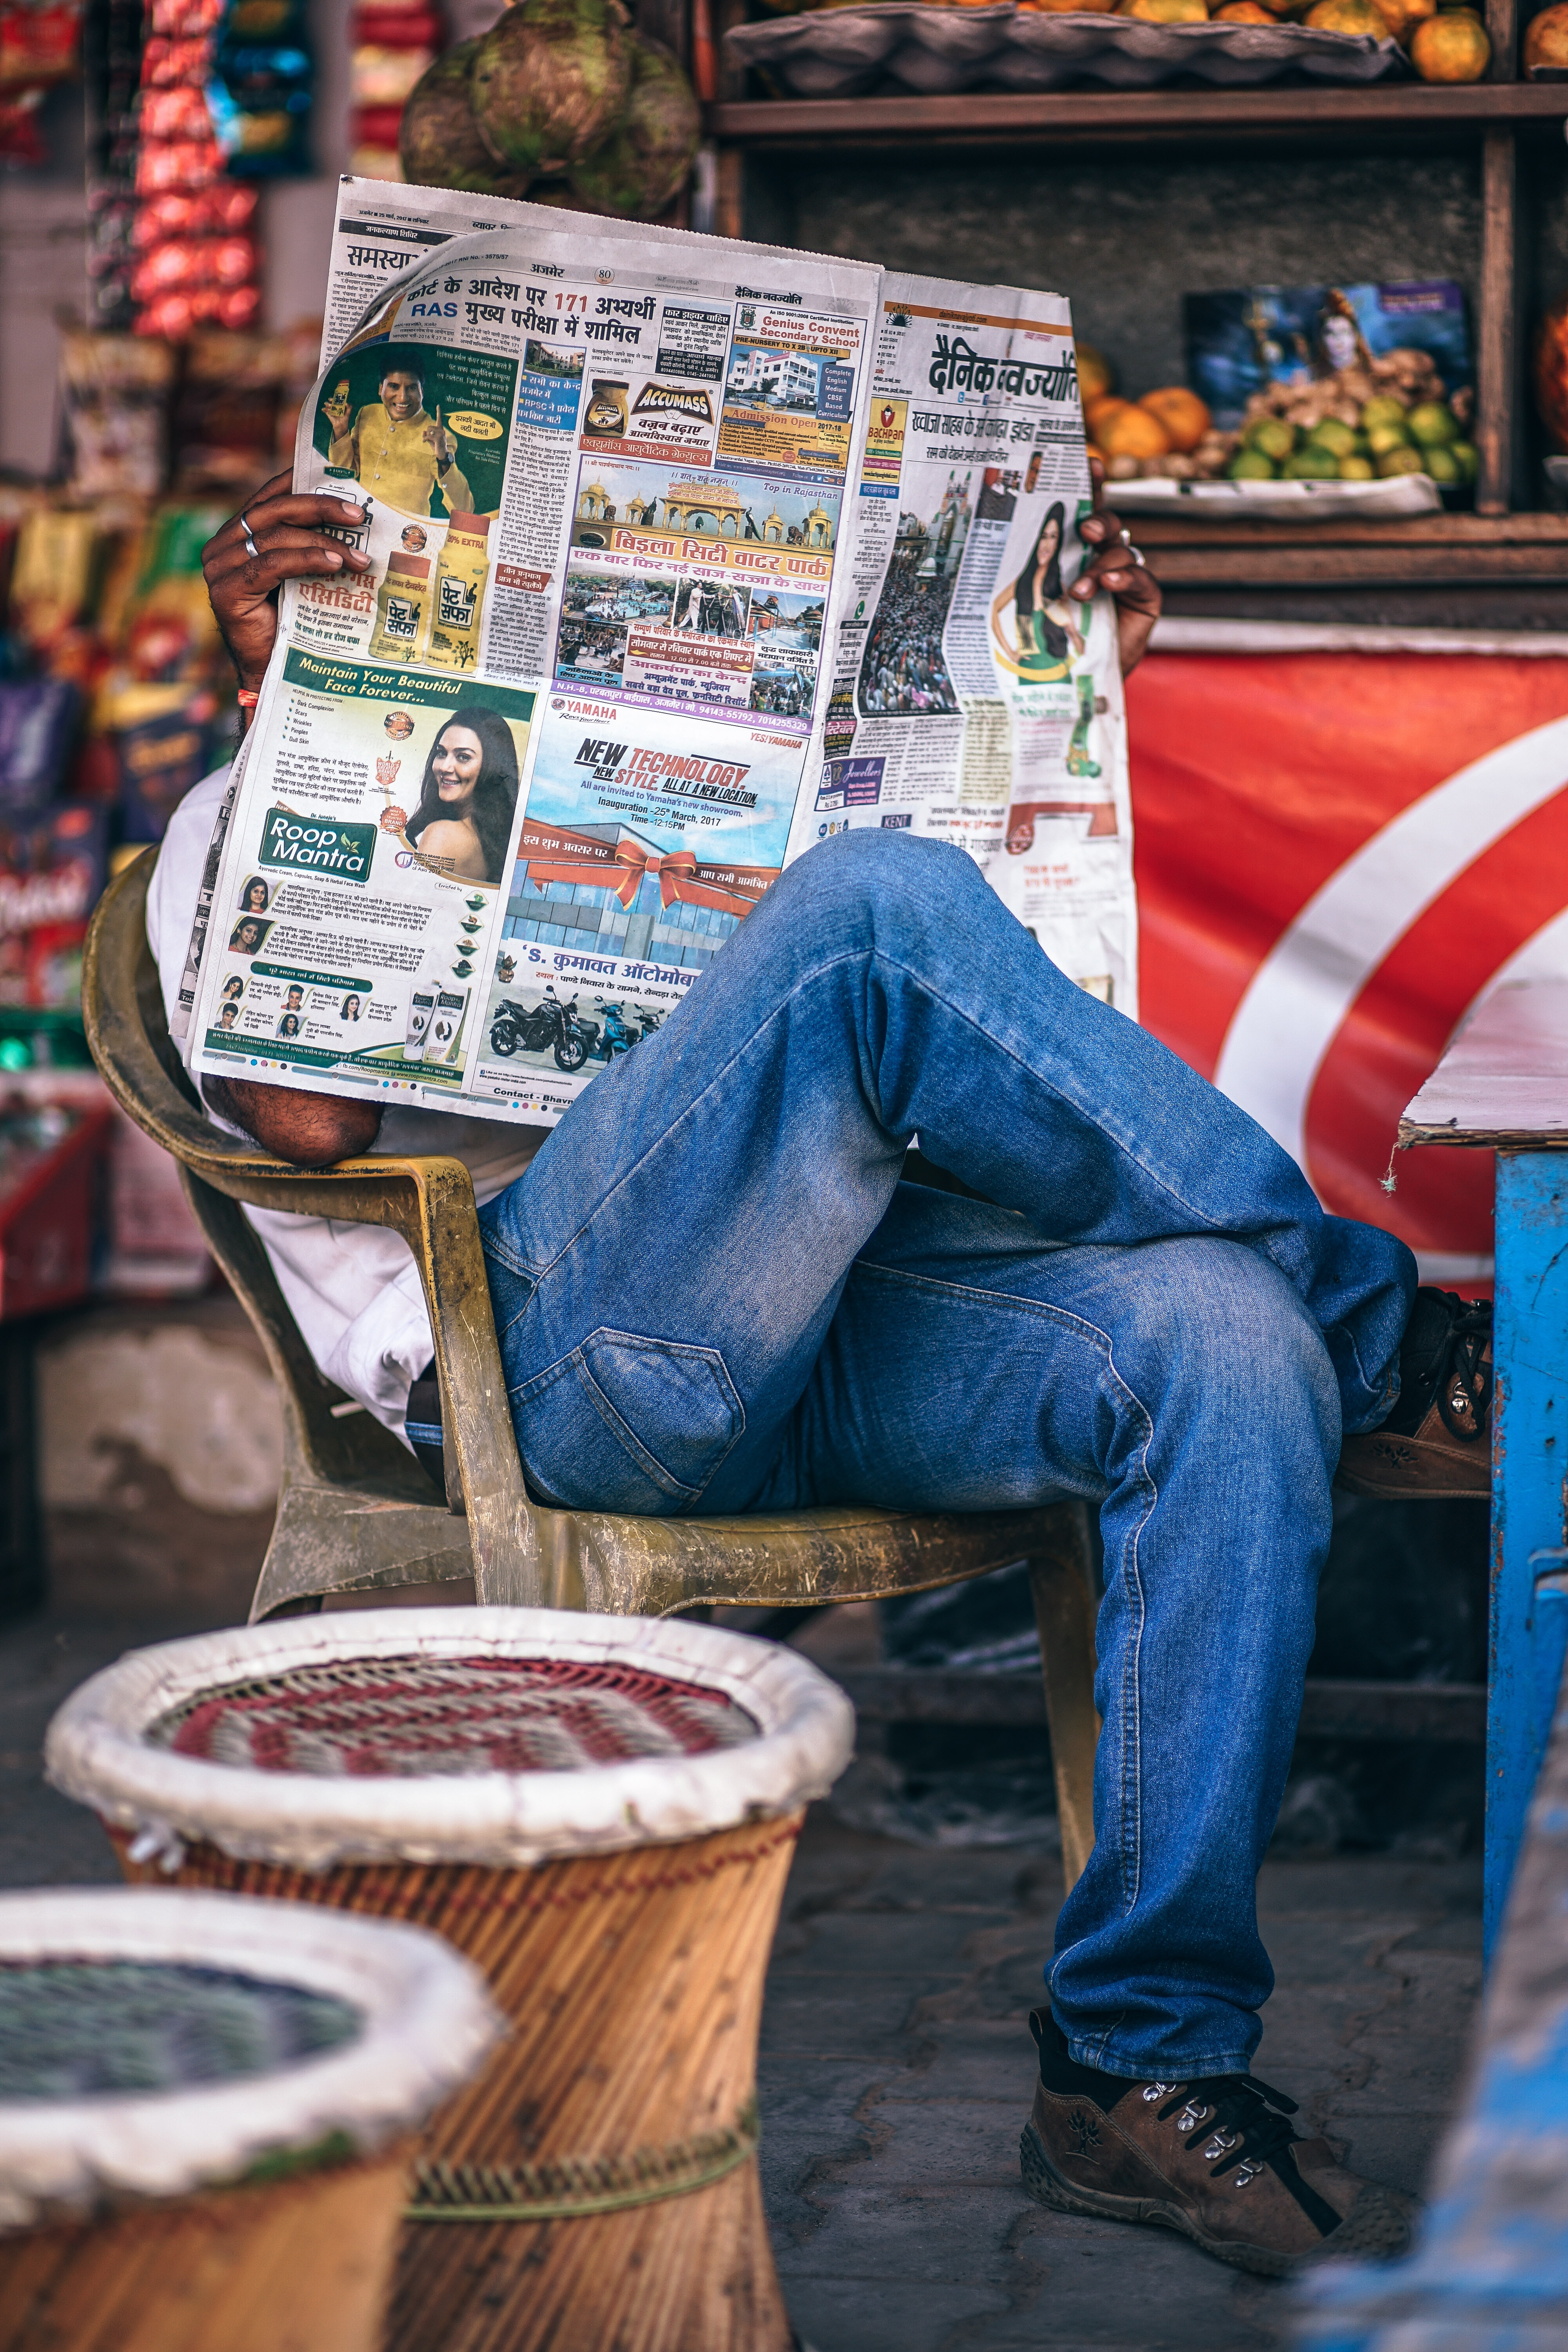 Man Sitting on Plastic Armchair Reading Newspaper, Adult, Sell, Outdoors, Paper, HQ Photo